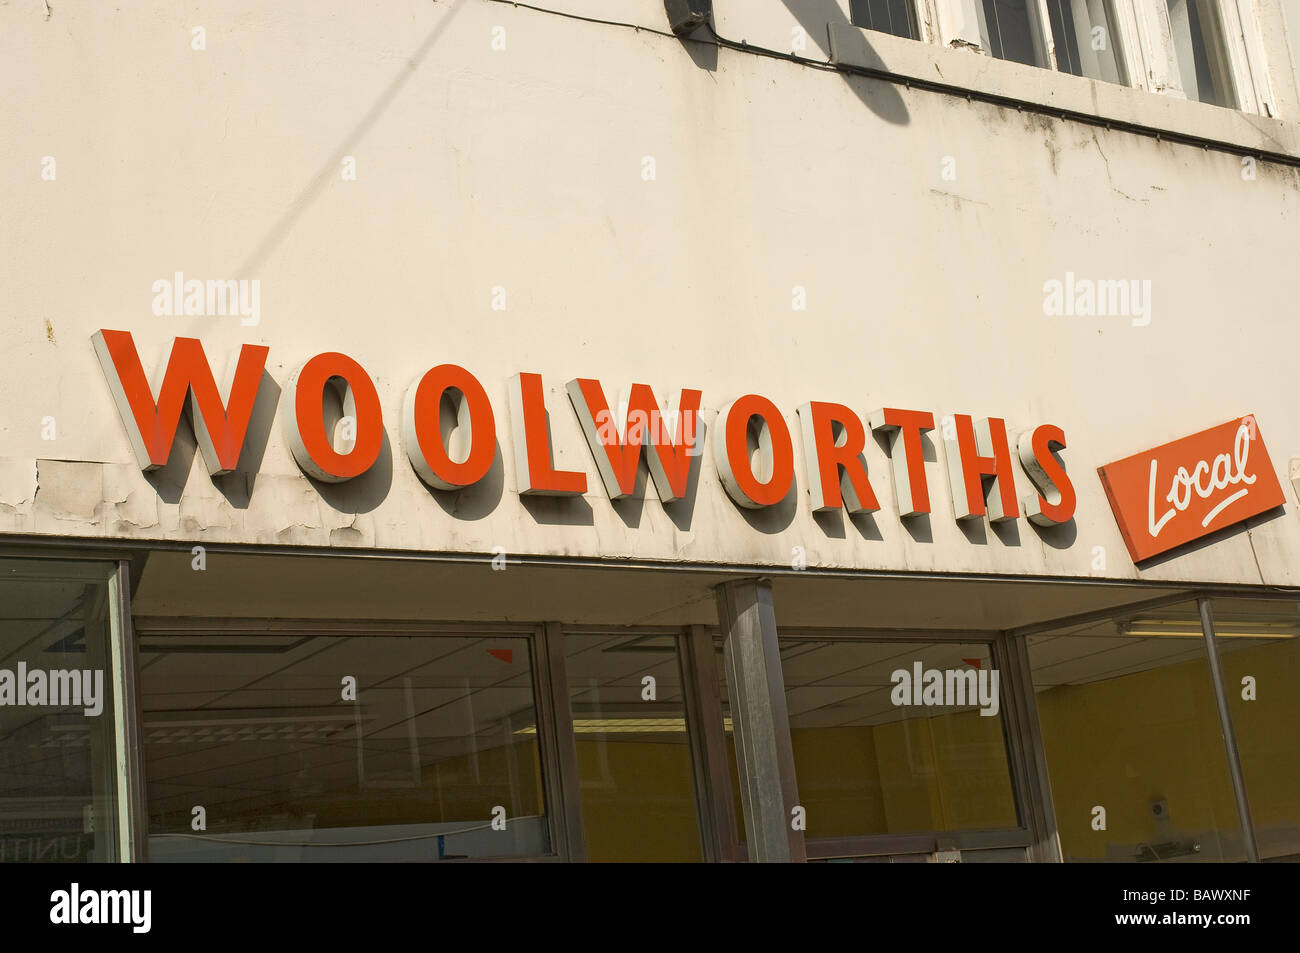 Signage of redundant Woolworths shop store England UK United Kingdom GB Great Britain - Stock Image